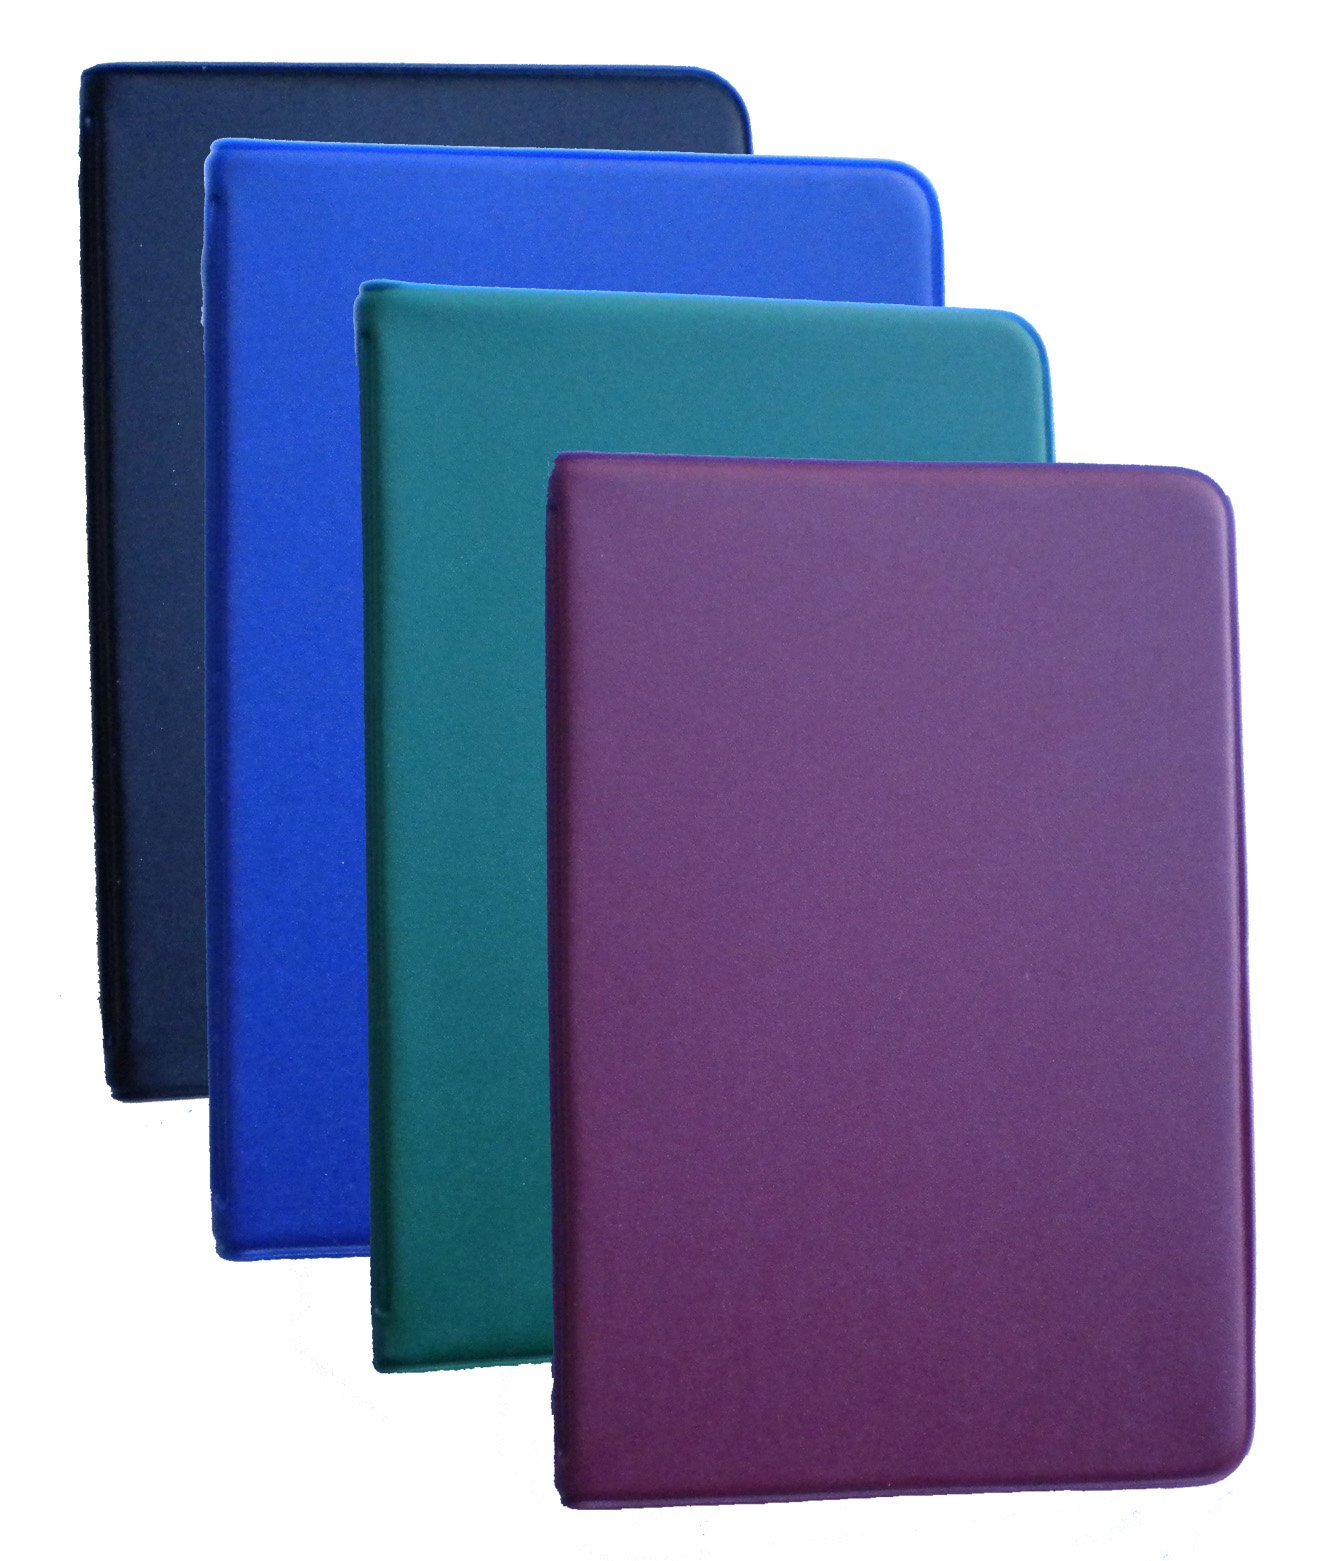 Mead (46000) Four Different Colored Mini 6-Ring Memo Books, Each Containing 3 x 5 inch Lined Paper by Mead (Image #2)